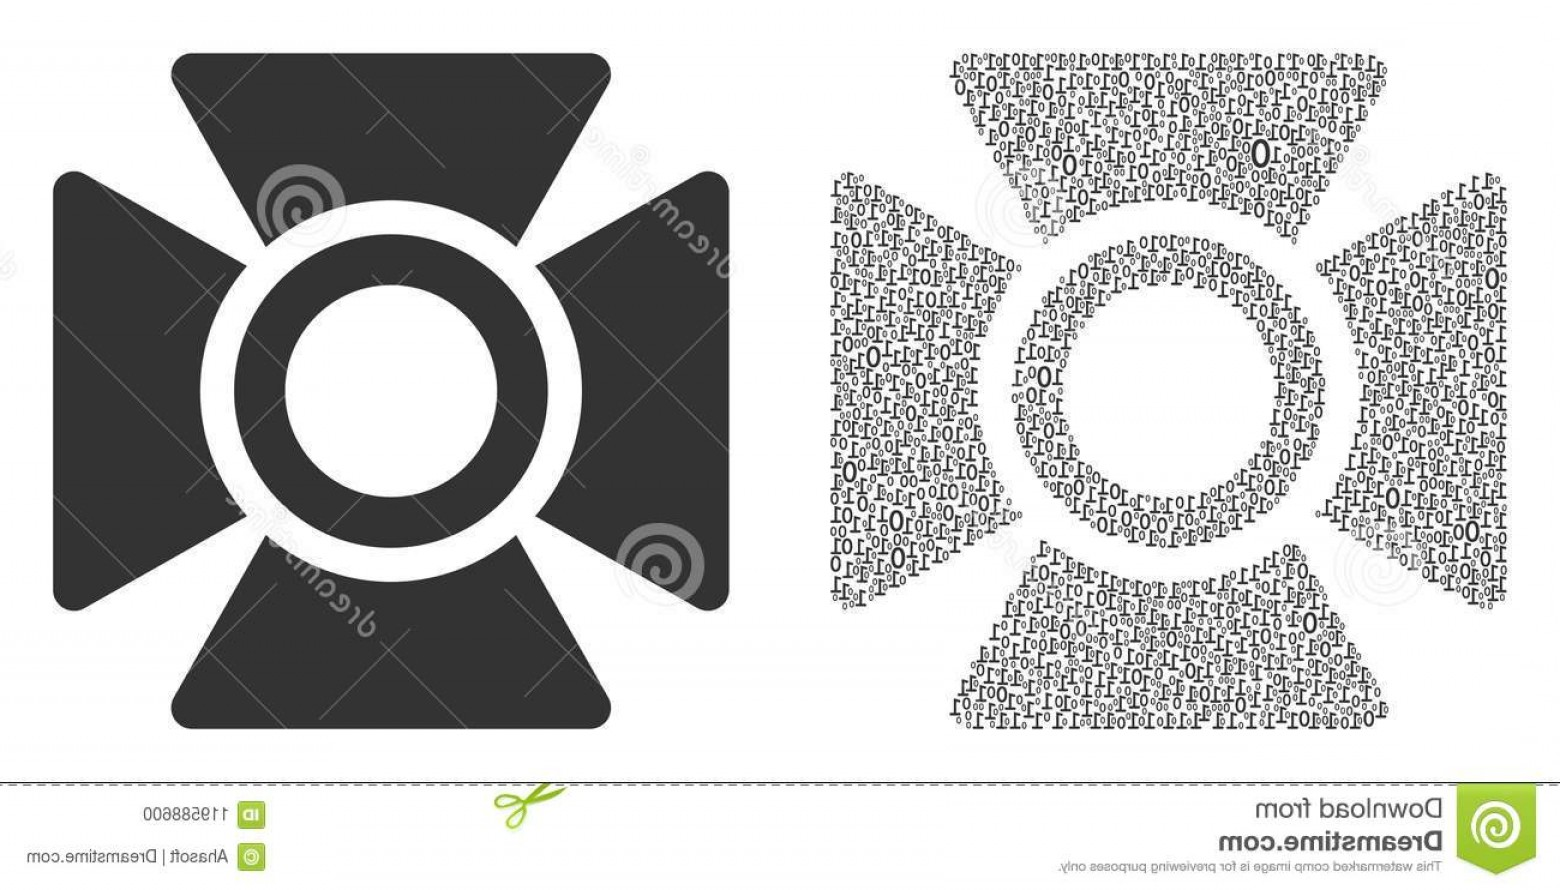 Null Vector Lighting: Searchlight Mosaic Icon Zero Null Digits Randomized Sizes Vector Digit Symbols Composed Searchlight Composition Image